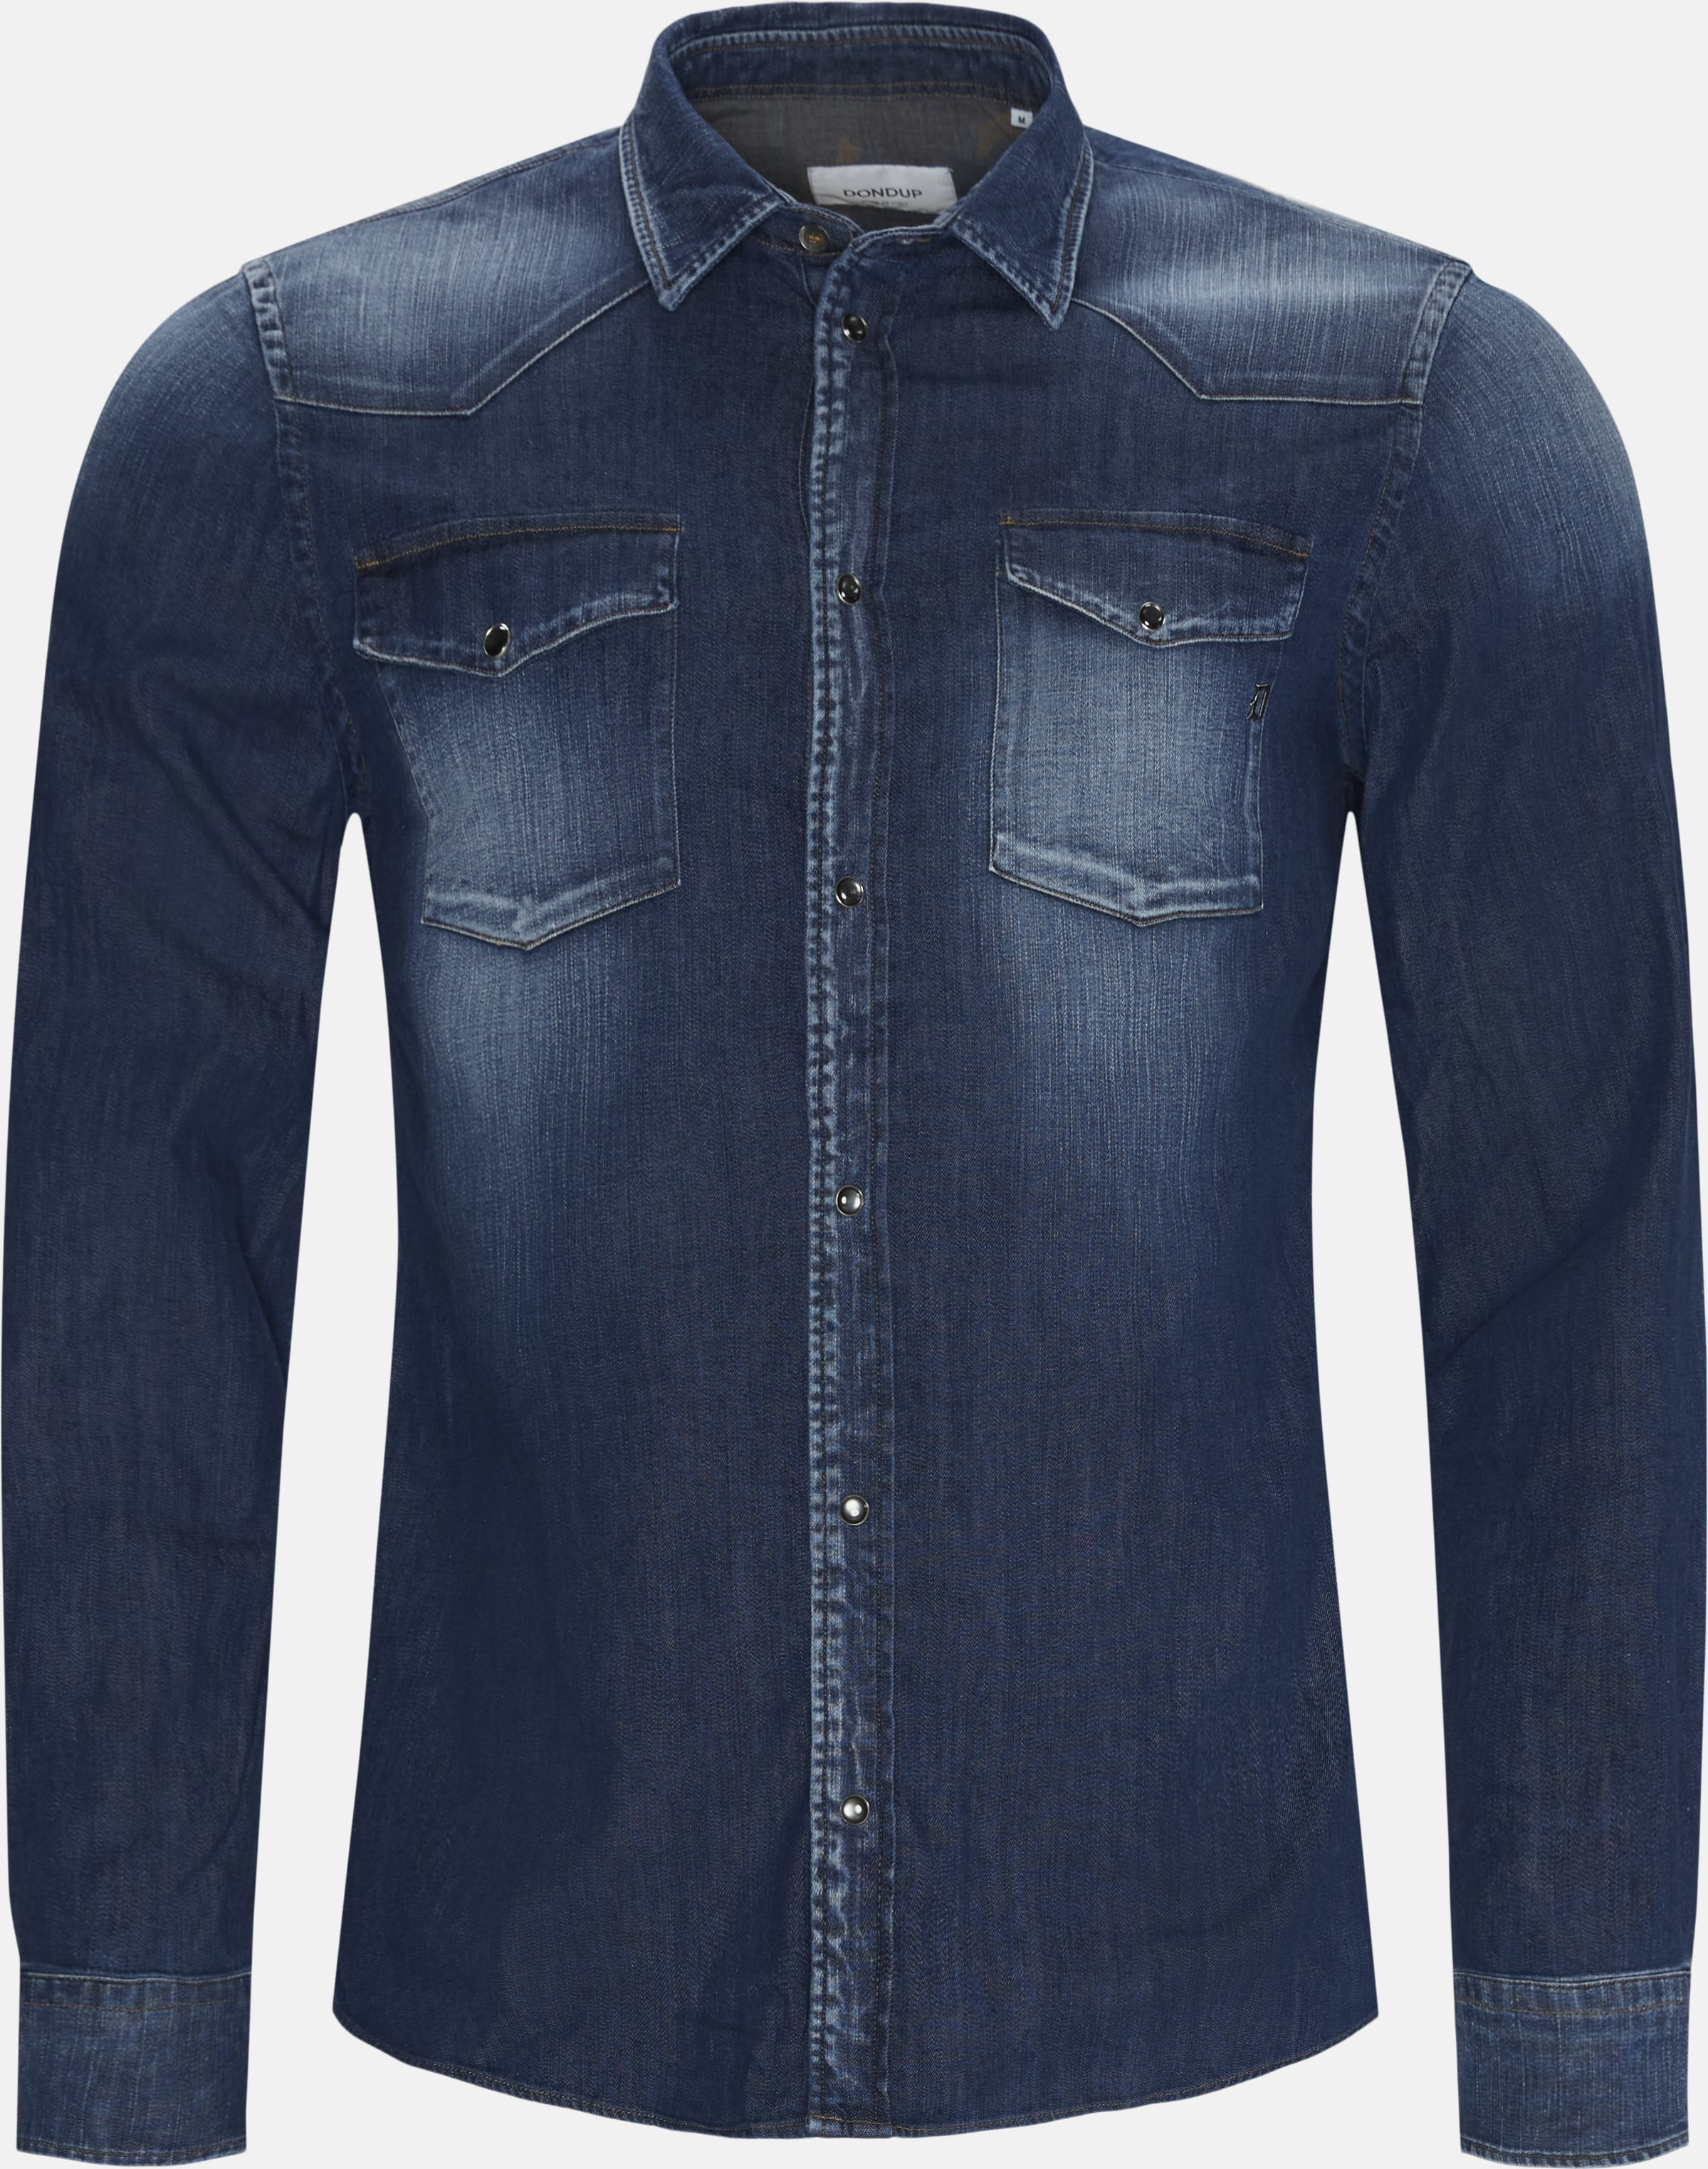 Shirts - Regular - Denim